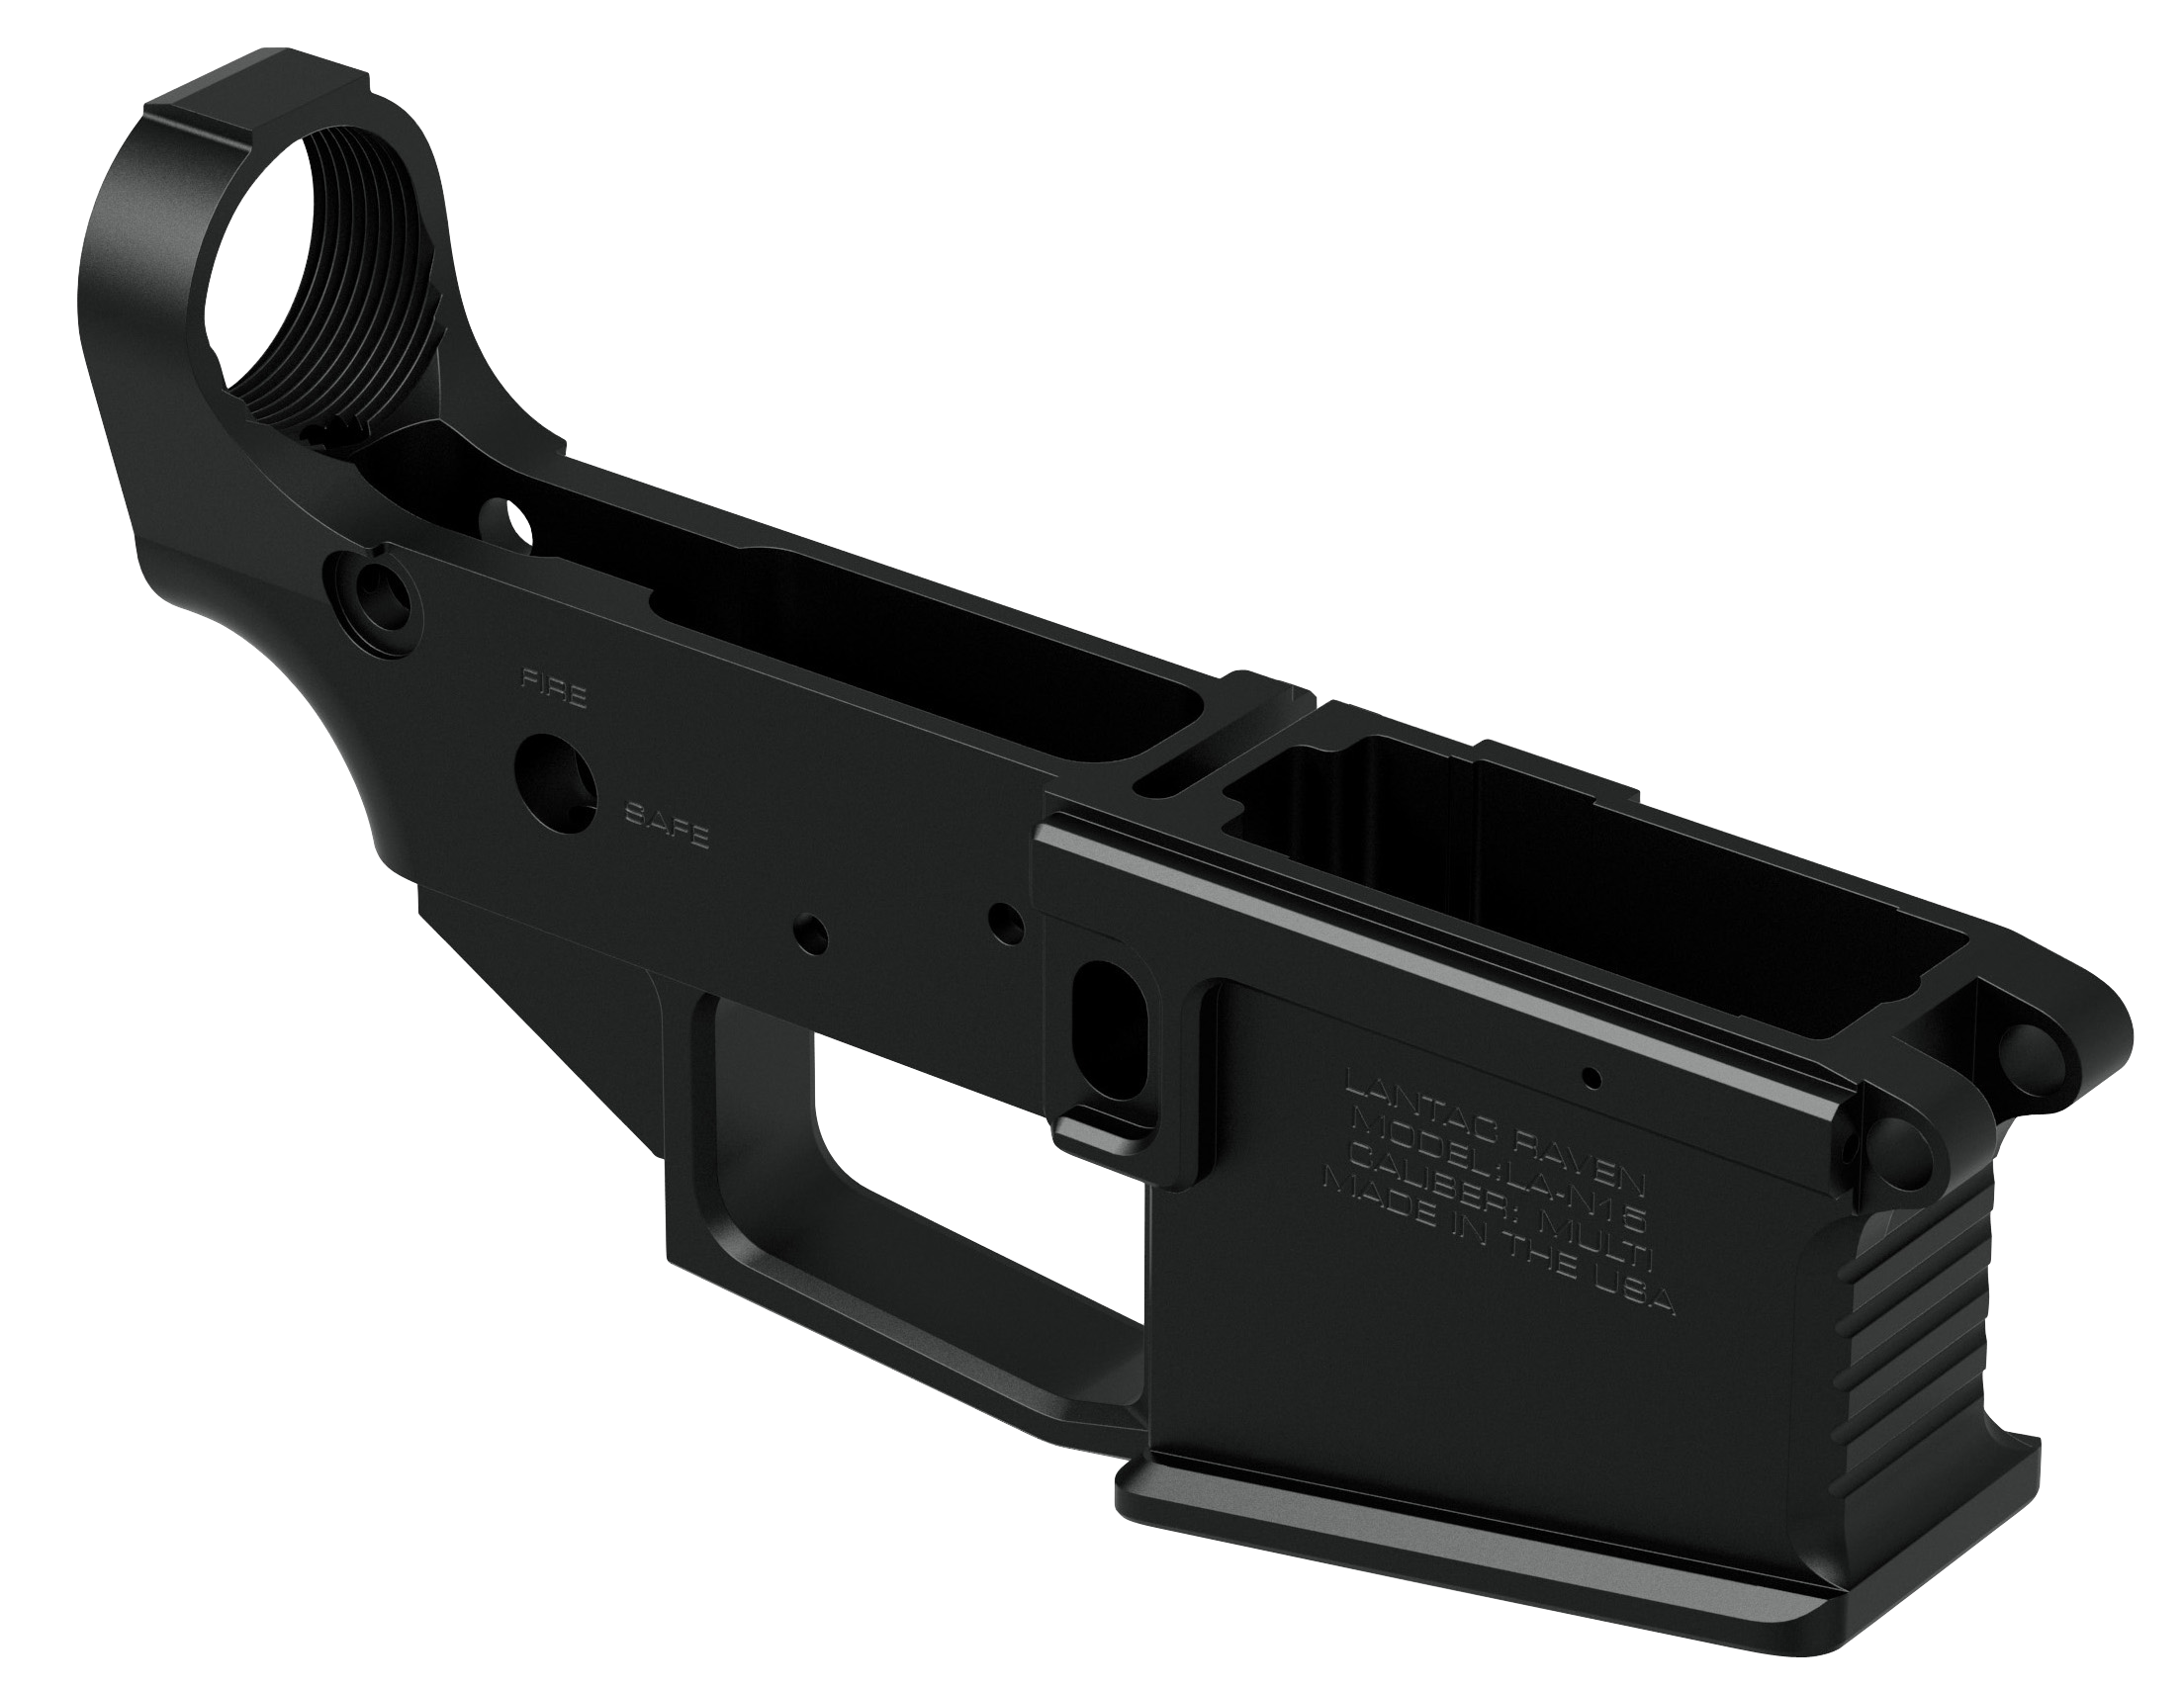 Lantac LA00267 Raven N15 Lower AR Platform Multi-Caliber Black Hardcoat Anodized